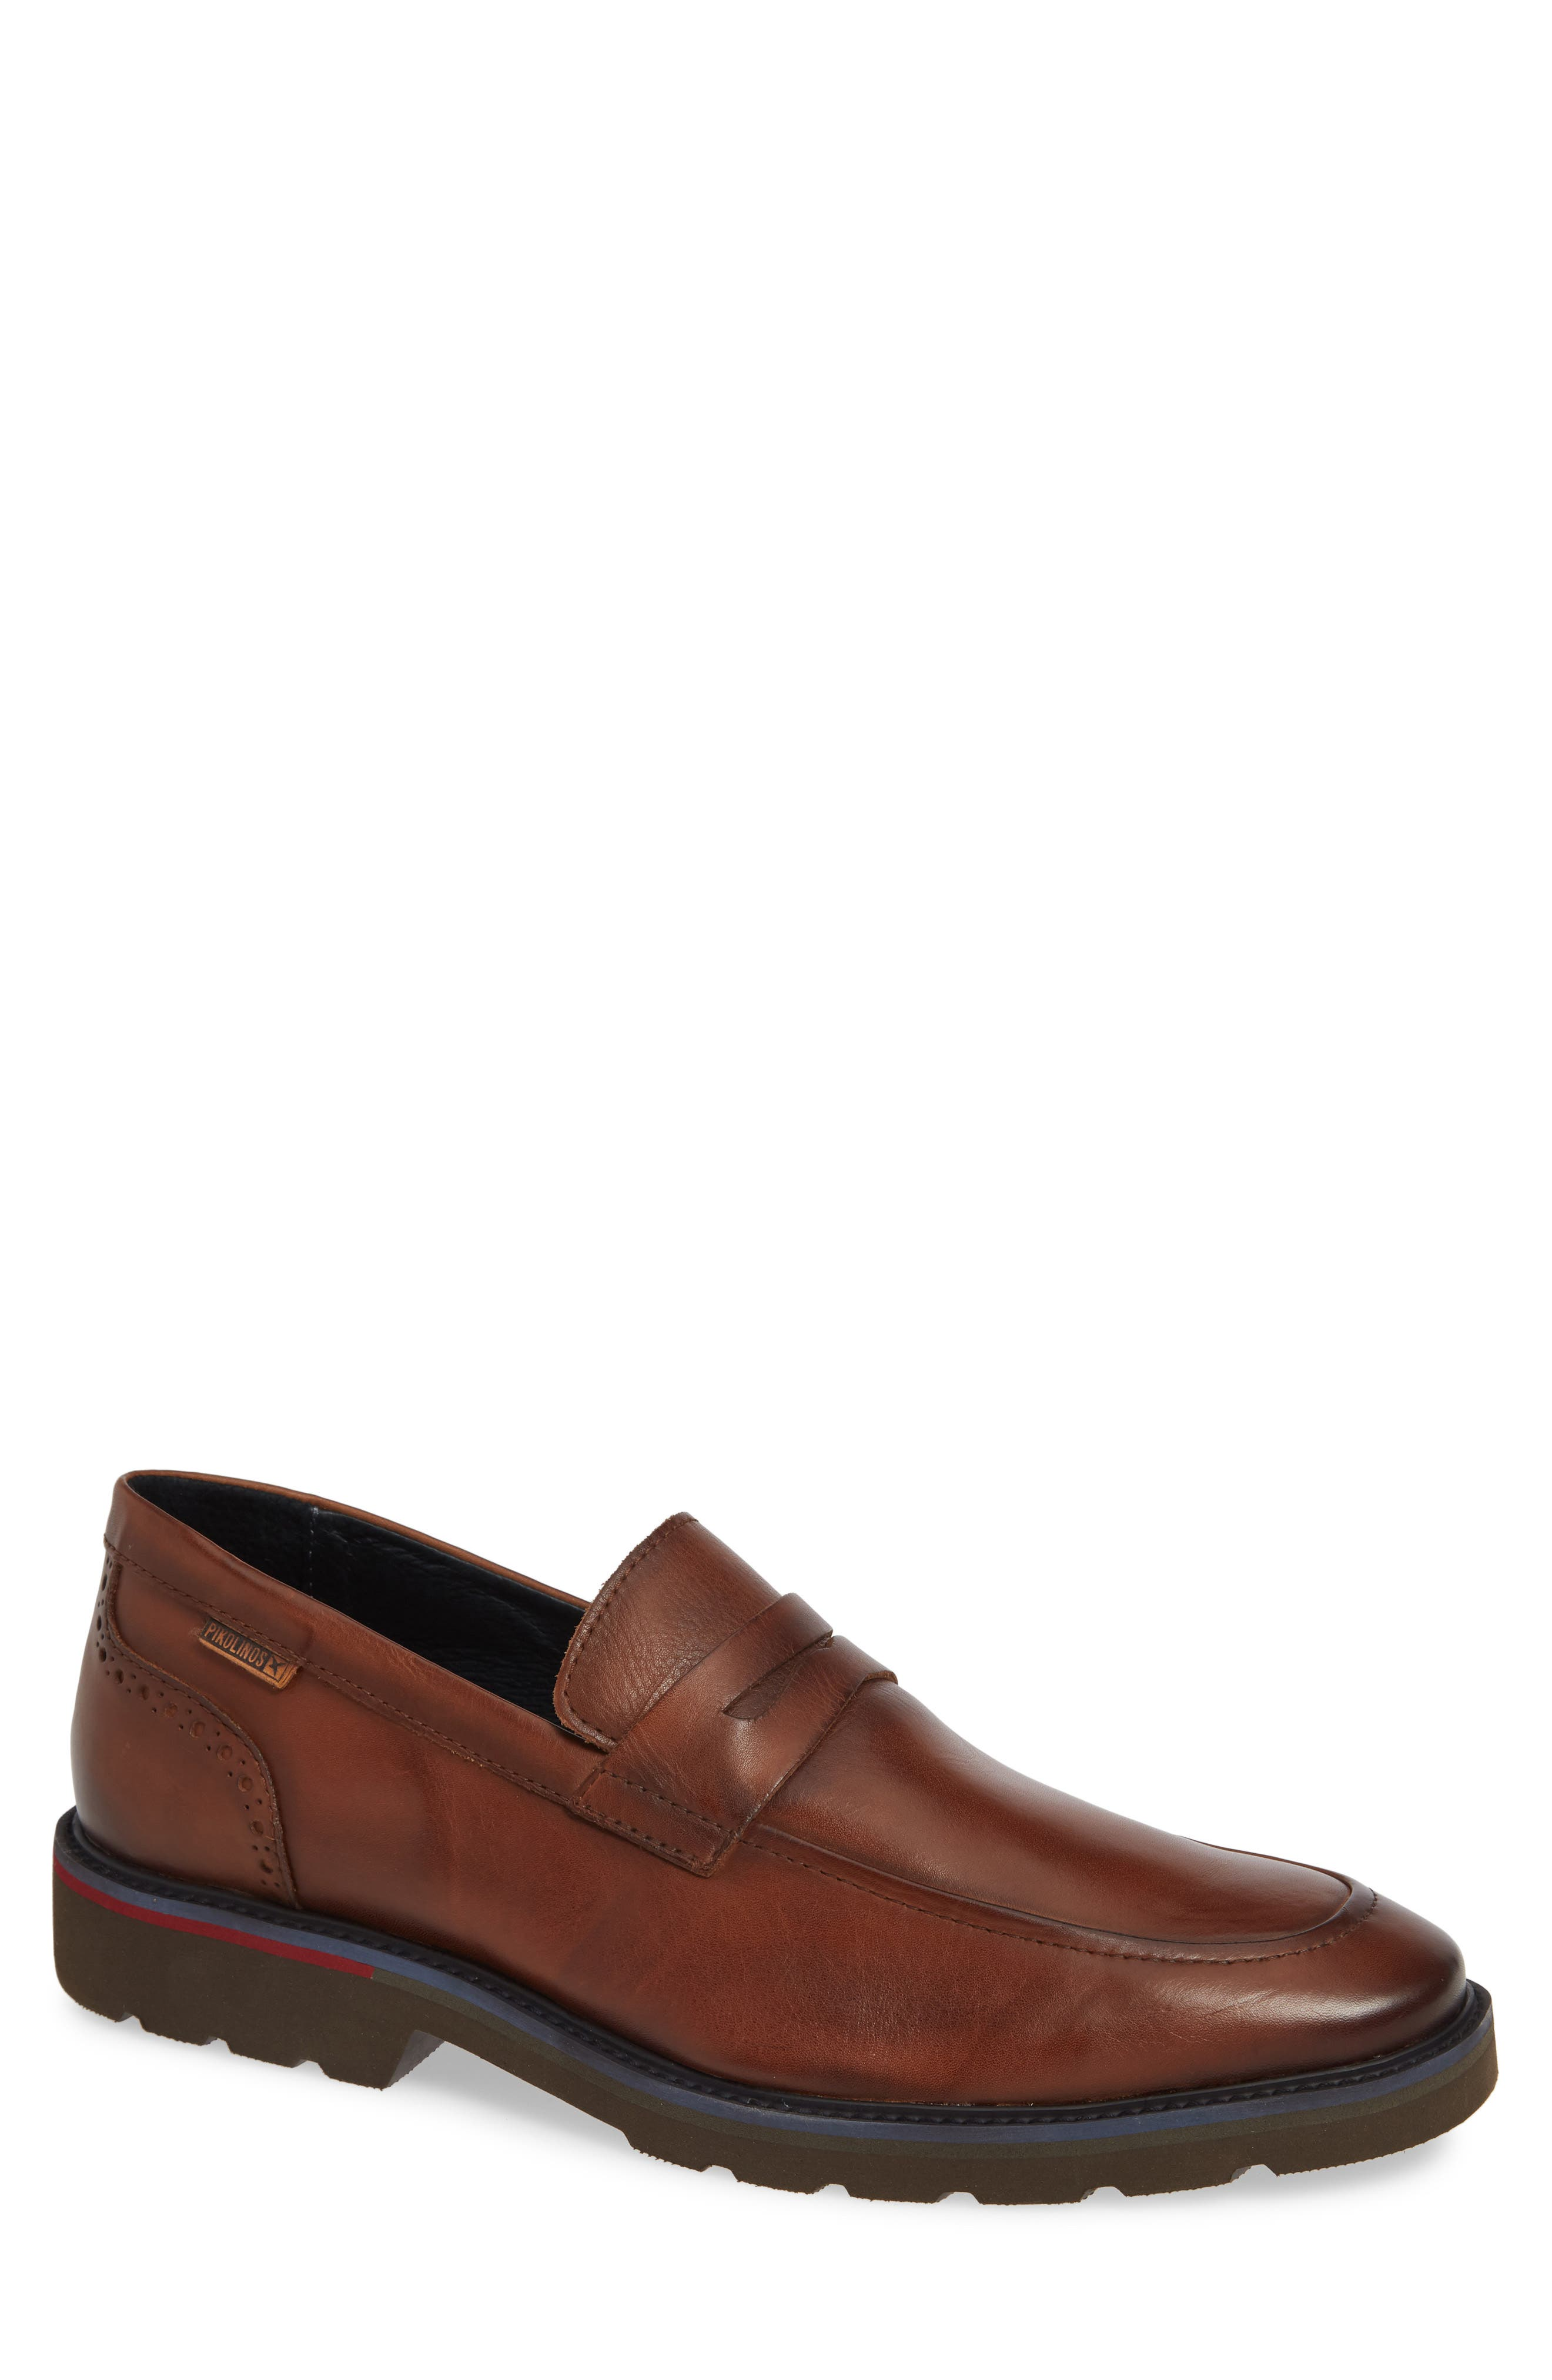 Salou Penny Loafer,                             Main thumbnail 1, color,                             203